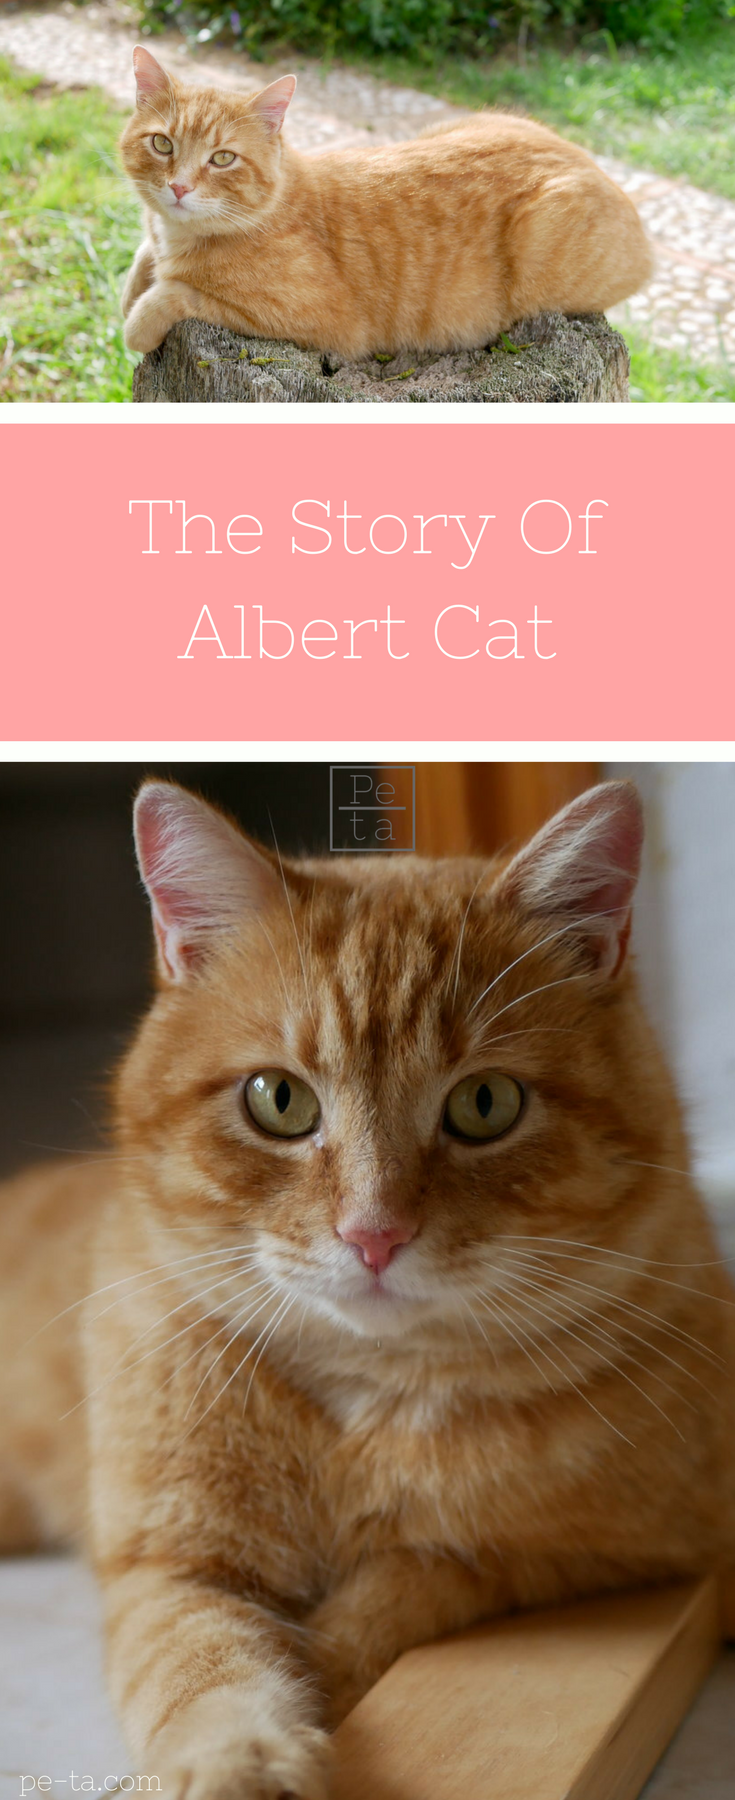 The Story Of Albert Cat